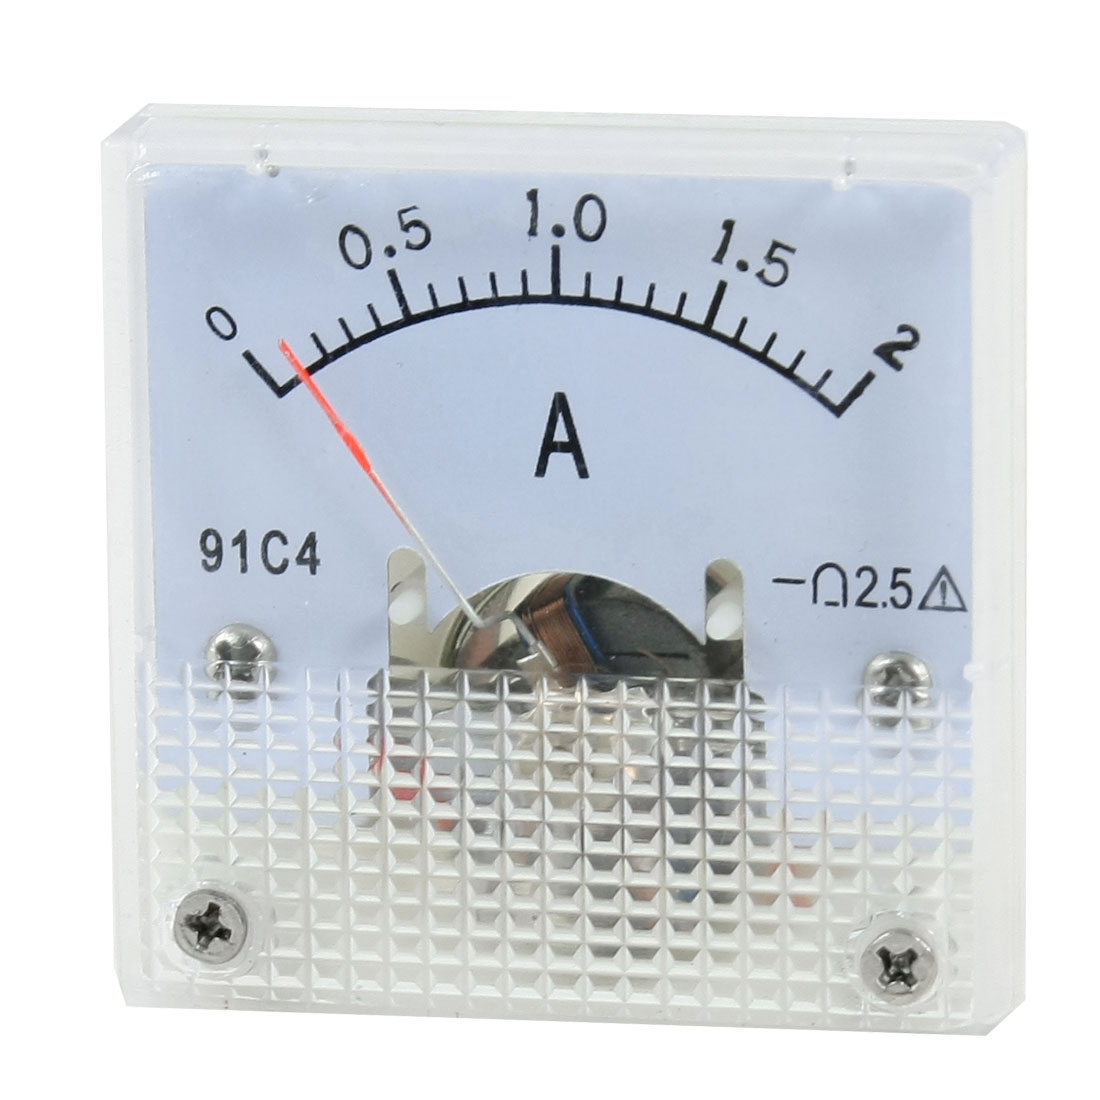 Class 2.5 DC 0-2A Analogue Ampere Panel Meter Amperemeter 91C4